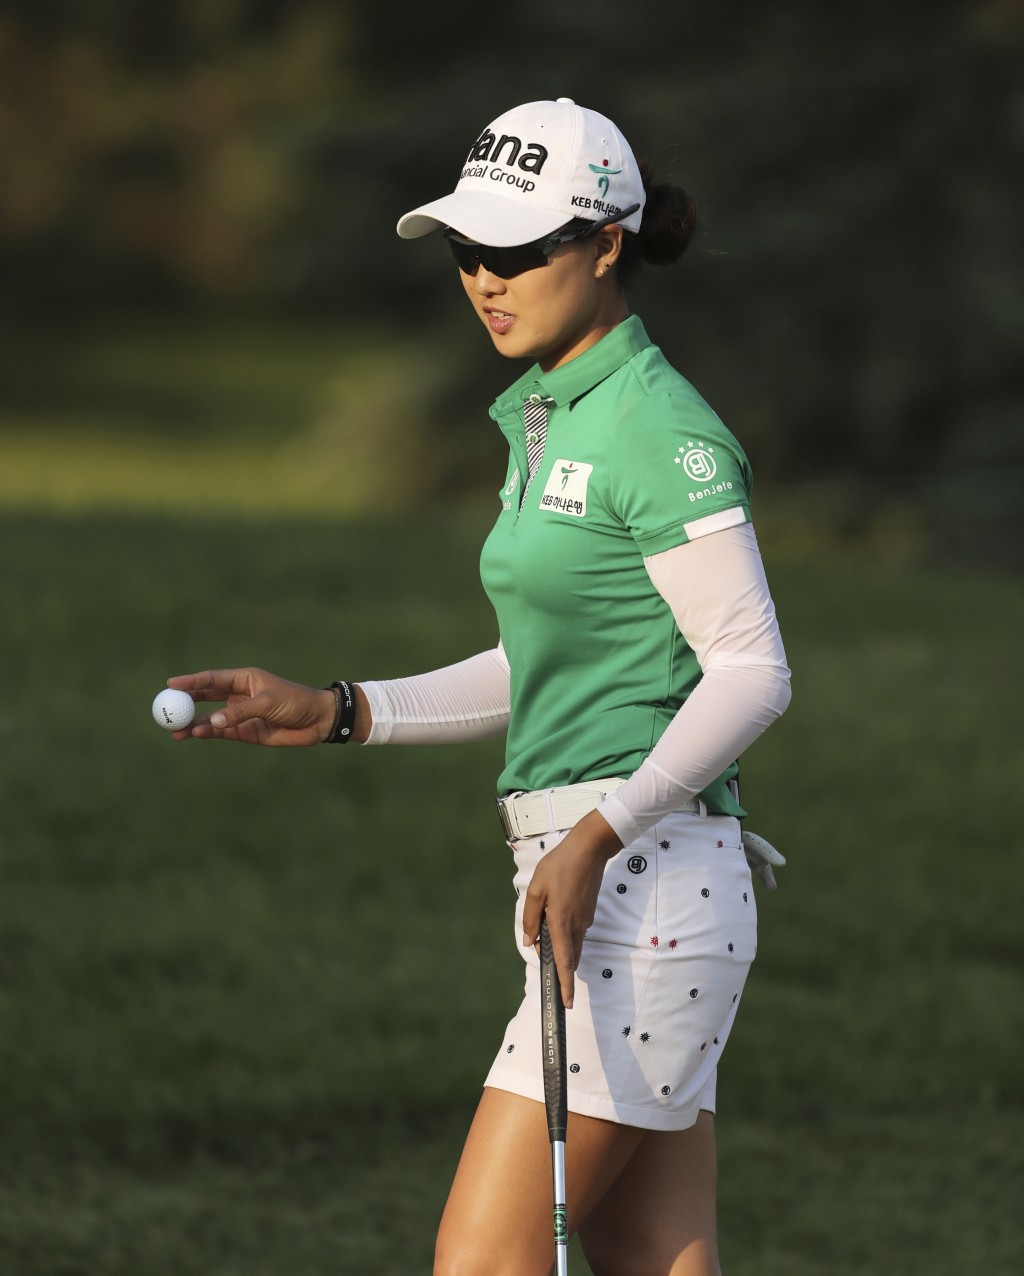 Minjee Lee, of Australia, acknowledges the gallery after her birdie putt on the 15th green during the third round of the LPGA Volvik Championship golf...